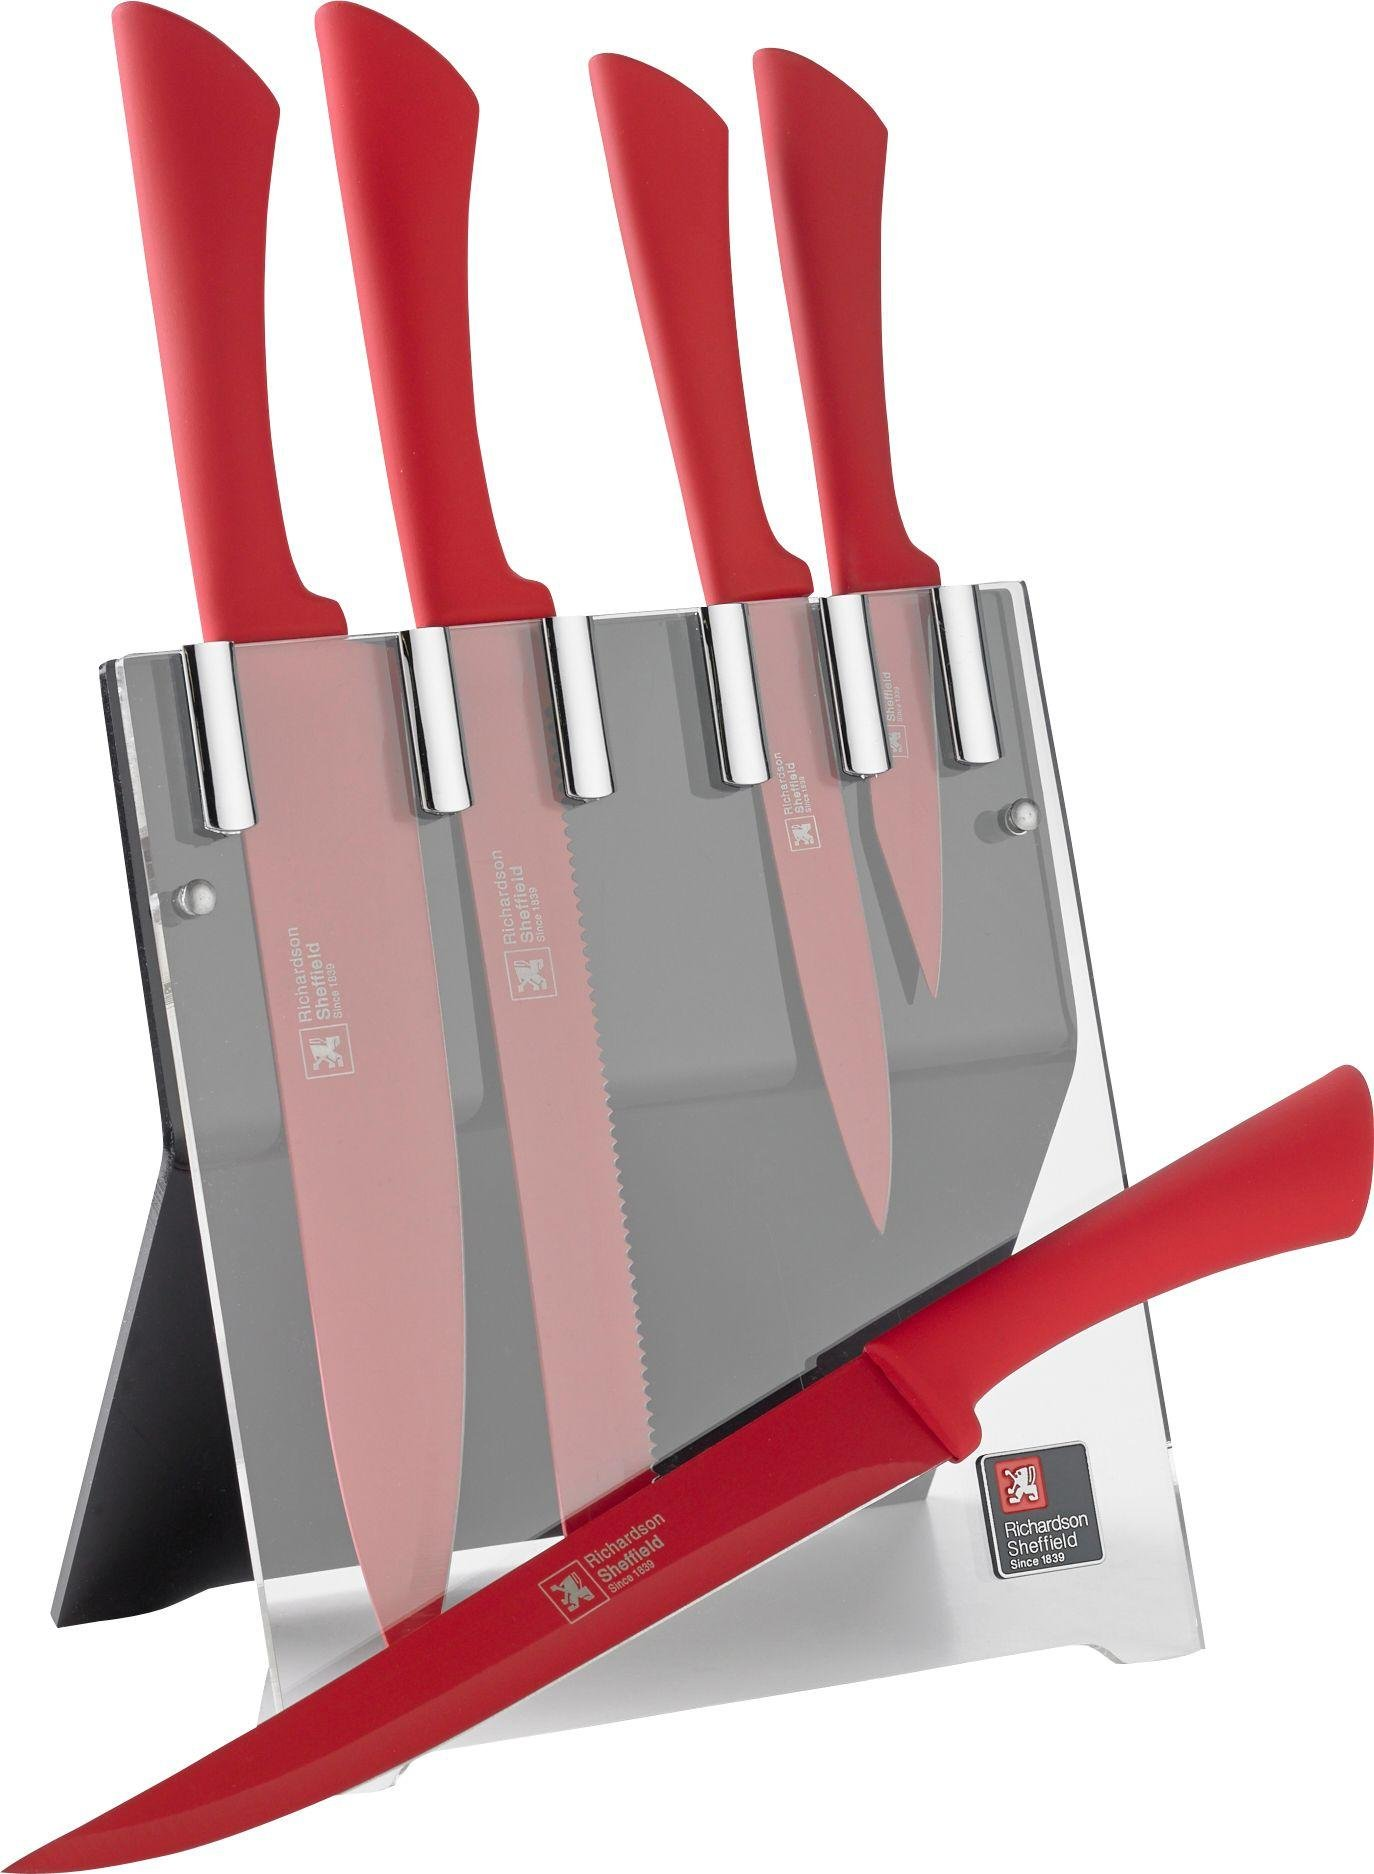 Buy Richardson 5 Piece Knife Block Set